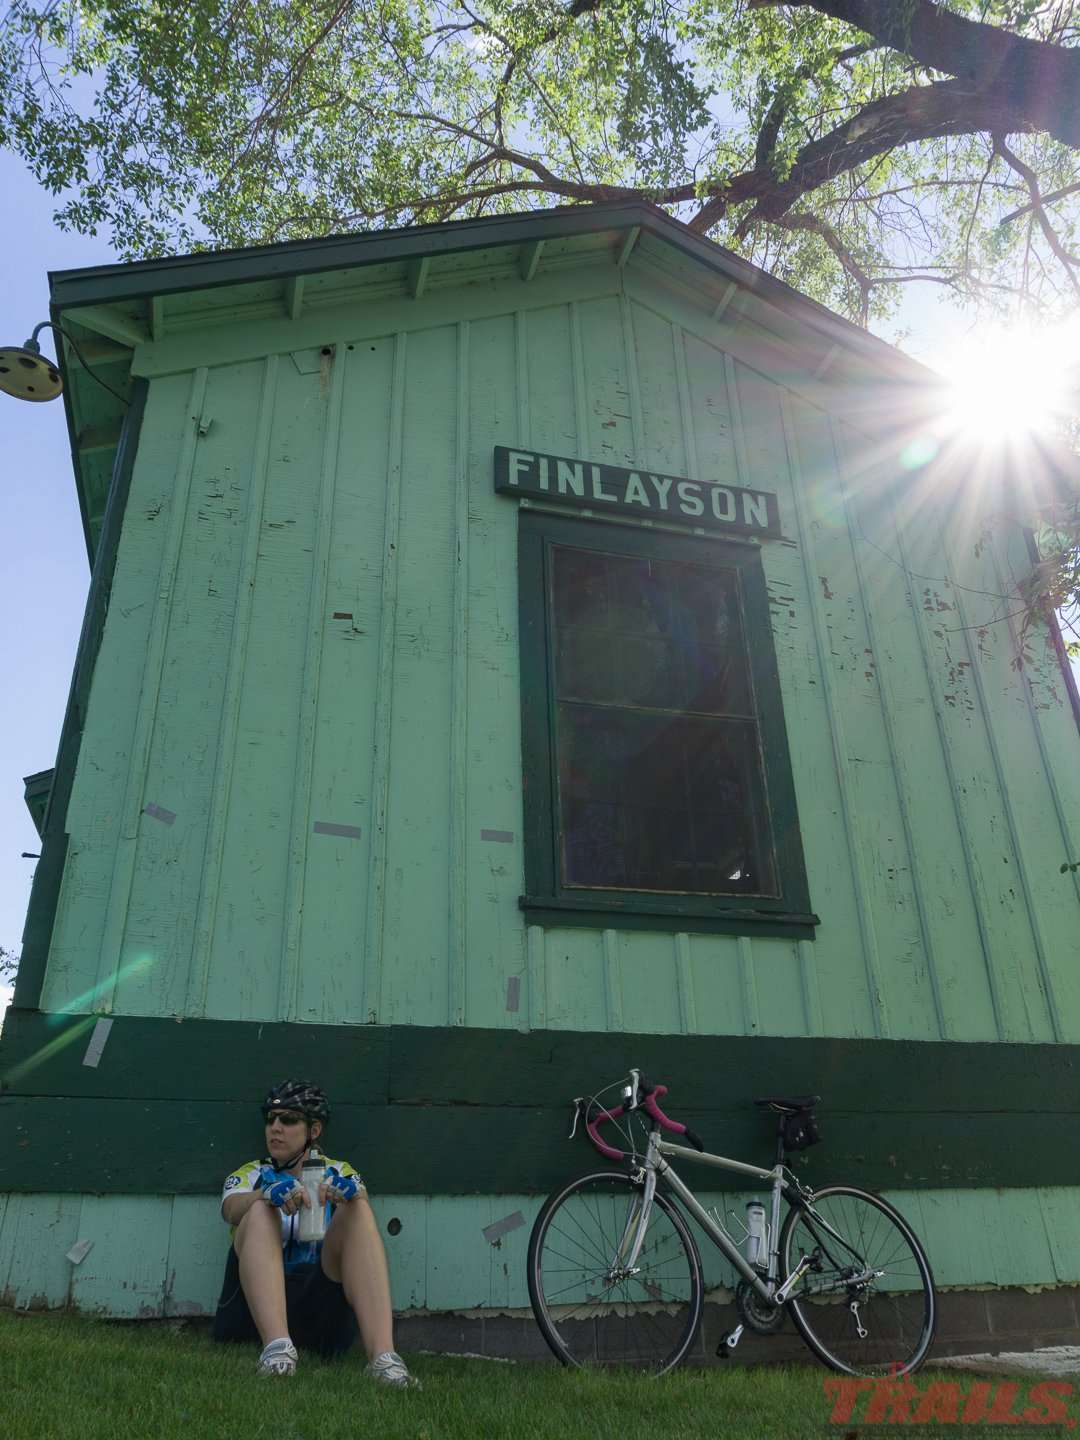 Taking a break at the old Fnlayson train depot on the Willard Munger Trail